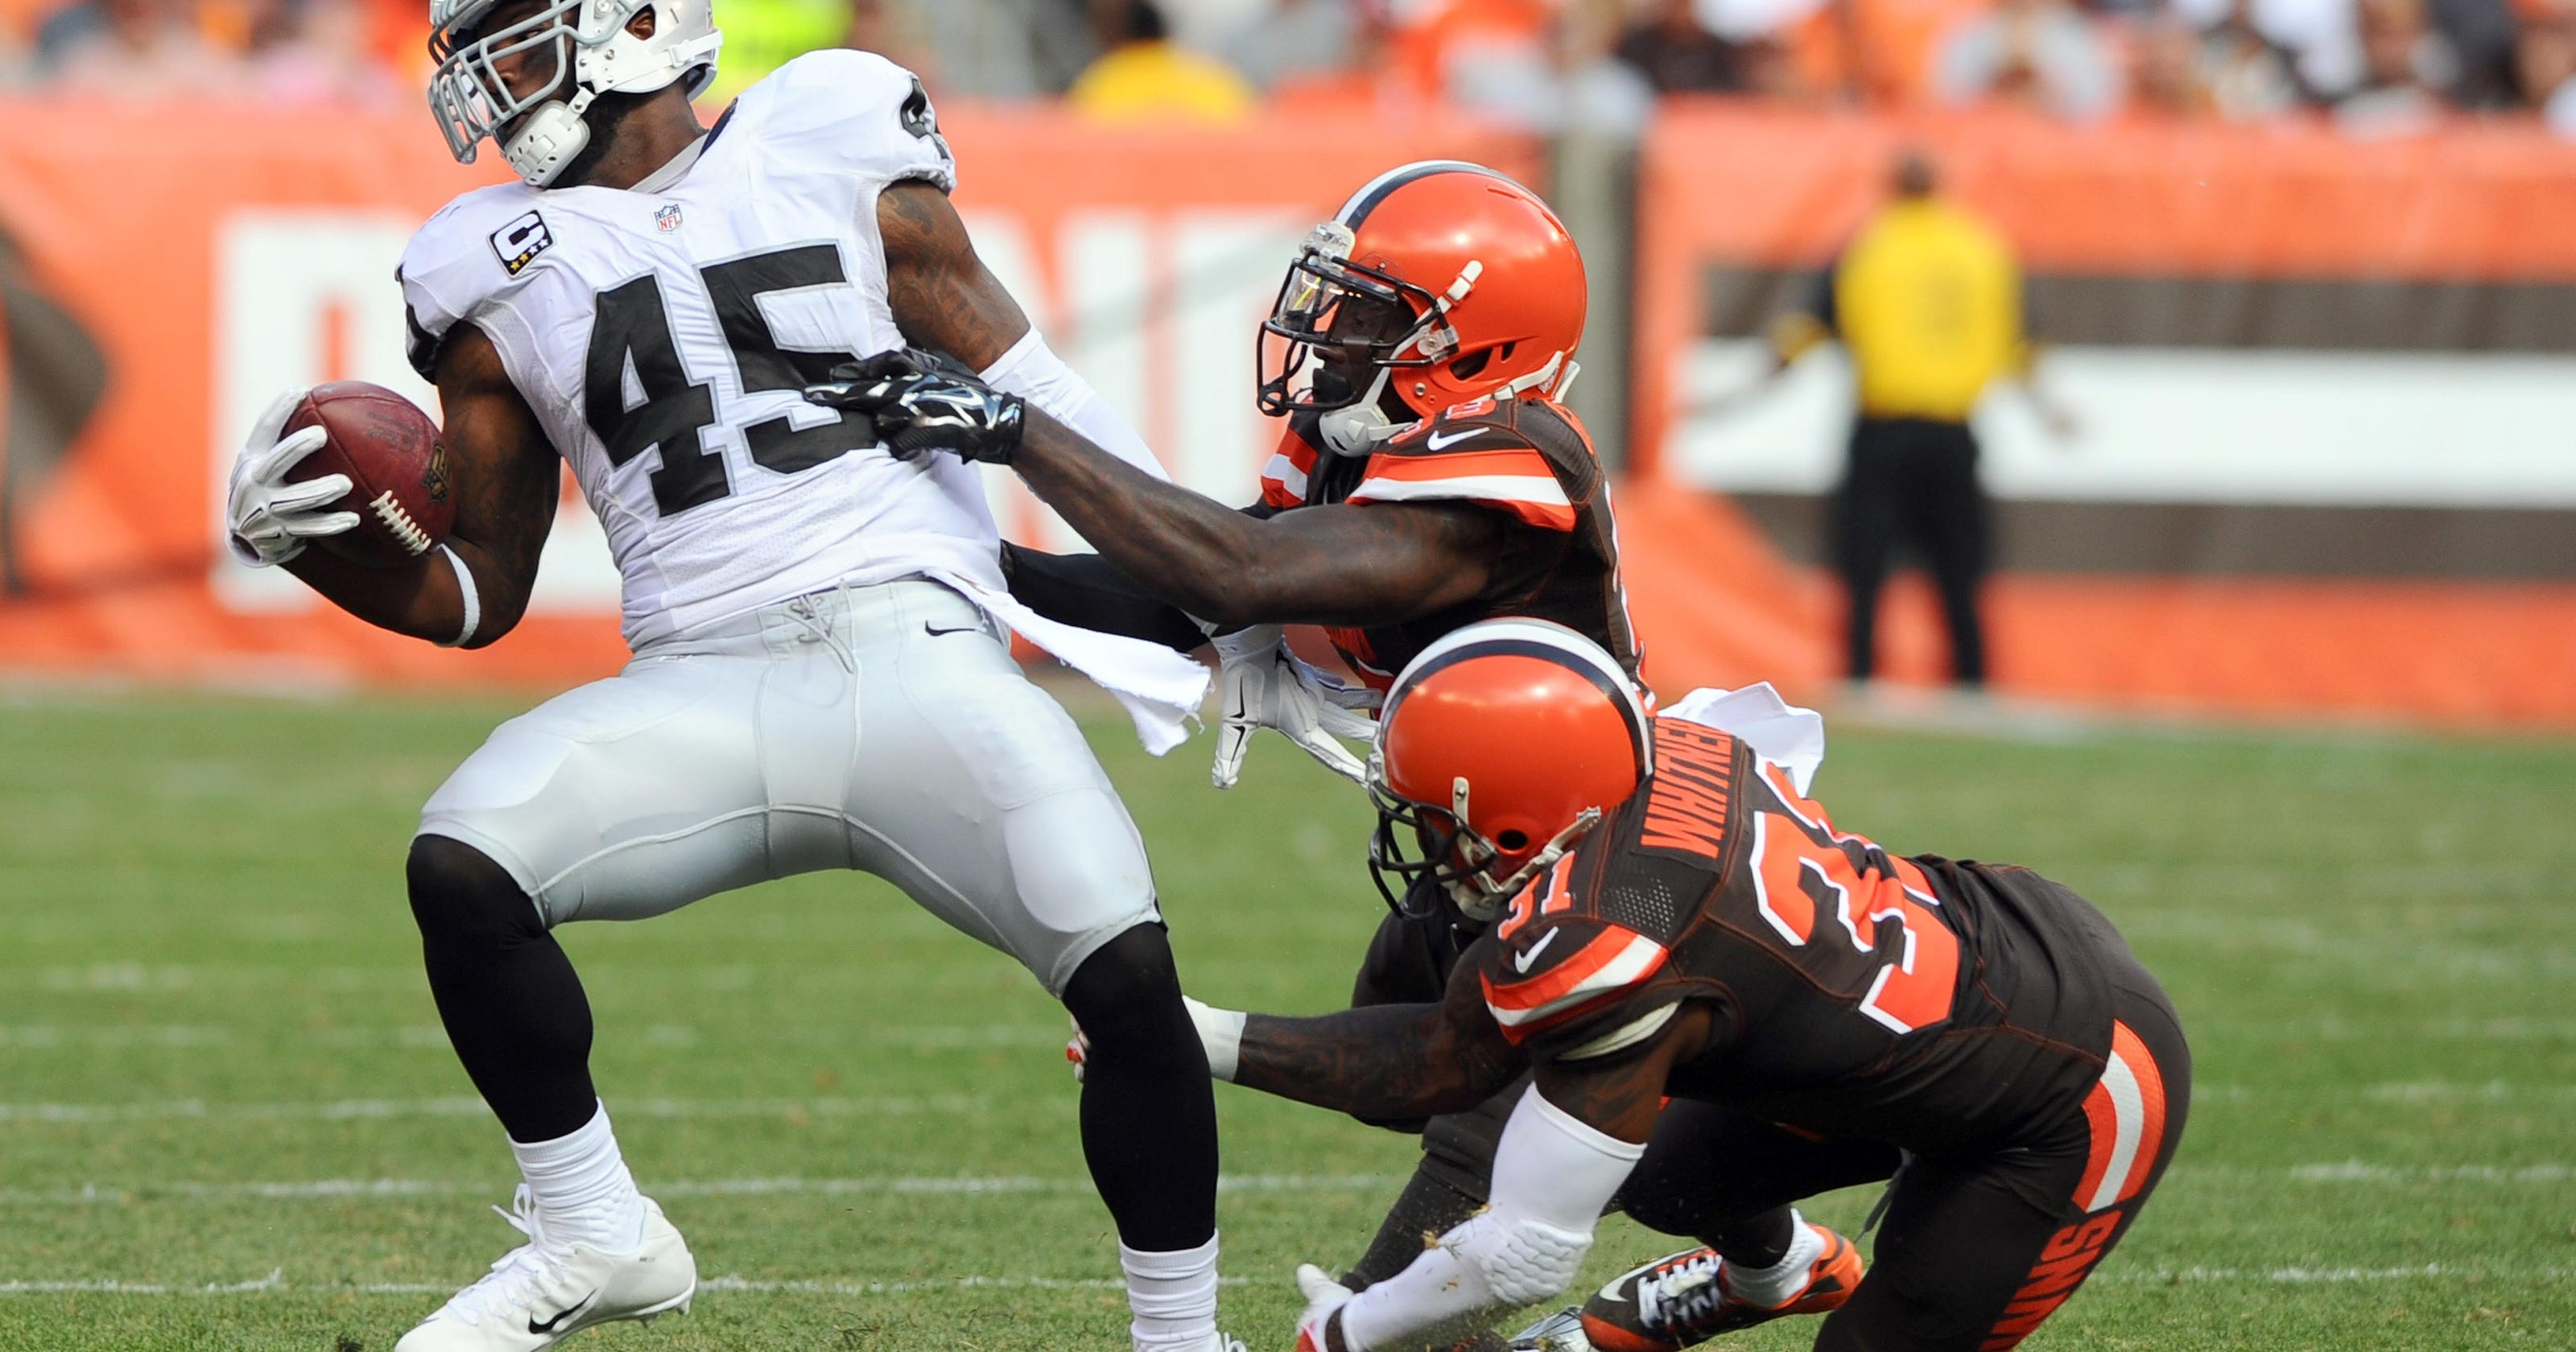 Browns Hope To Improve On Tackling Issues